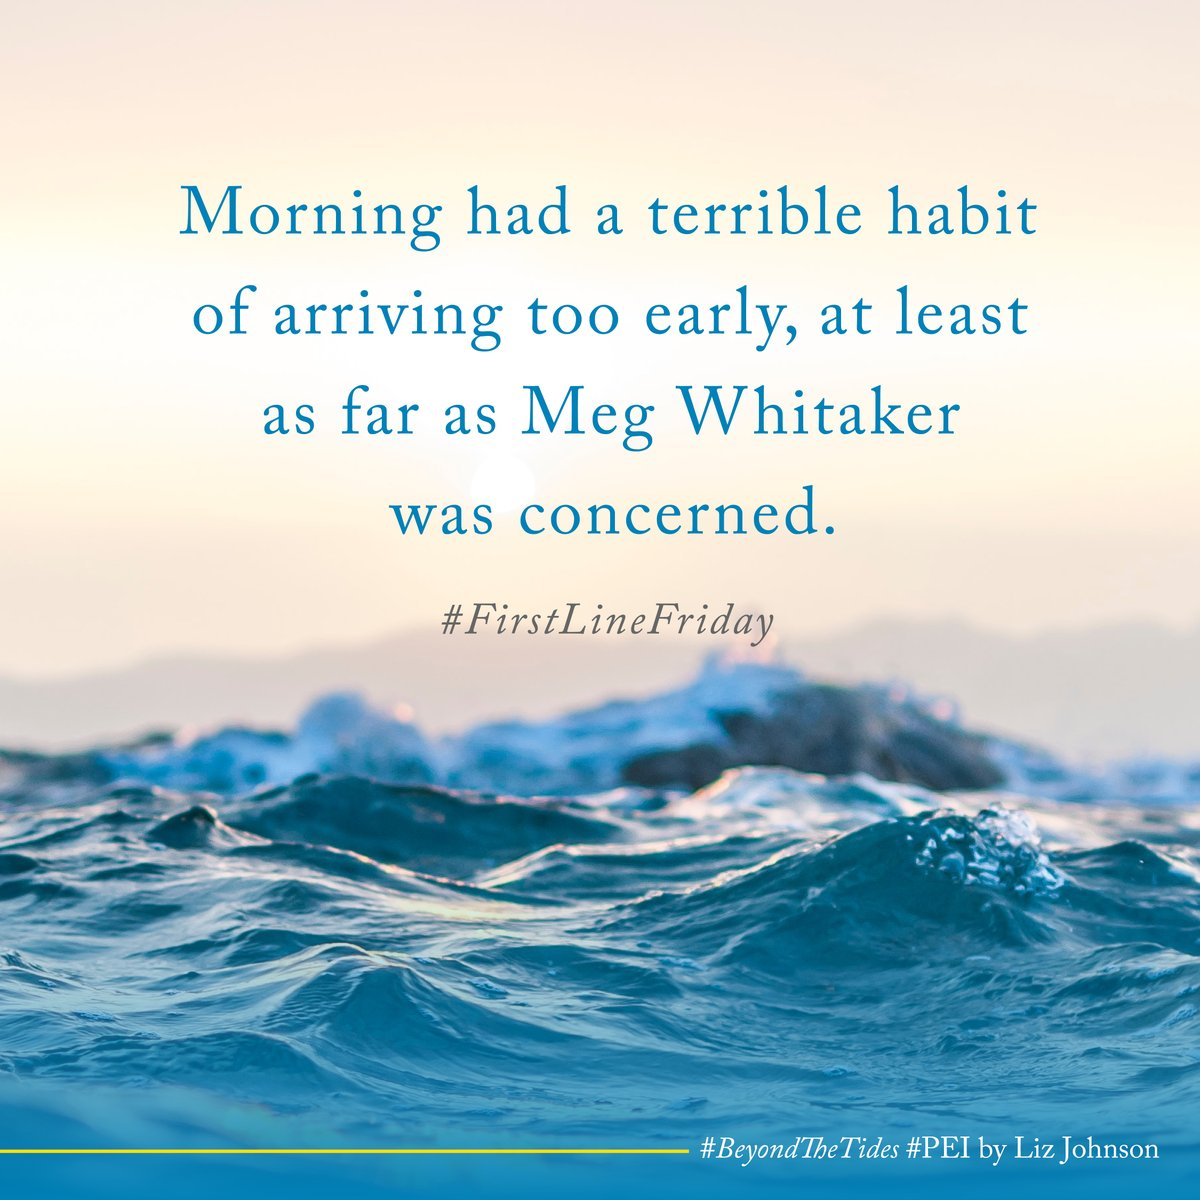 test Twitter Media - Morning had a terrible habit of arriving too early, at least as far as Meg Whitaker was concerned.   Beyond the Tides releases on Tuesday! I'm so ready for a return to to Prince Edward Island. Anyone else? #FirstLineFriday #BeyondtheTides https://t.co/6foqPcDq1n